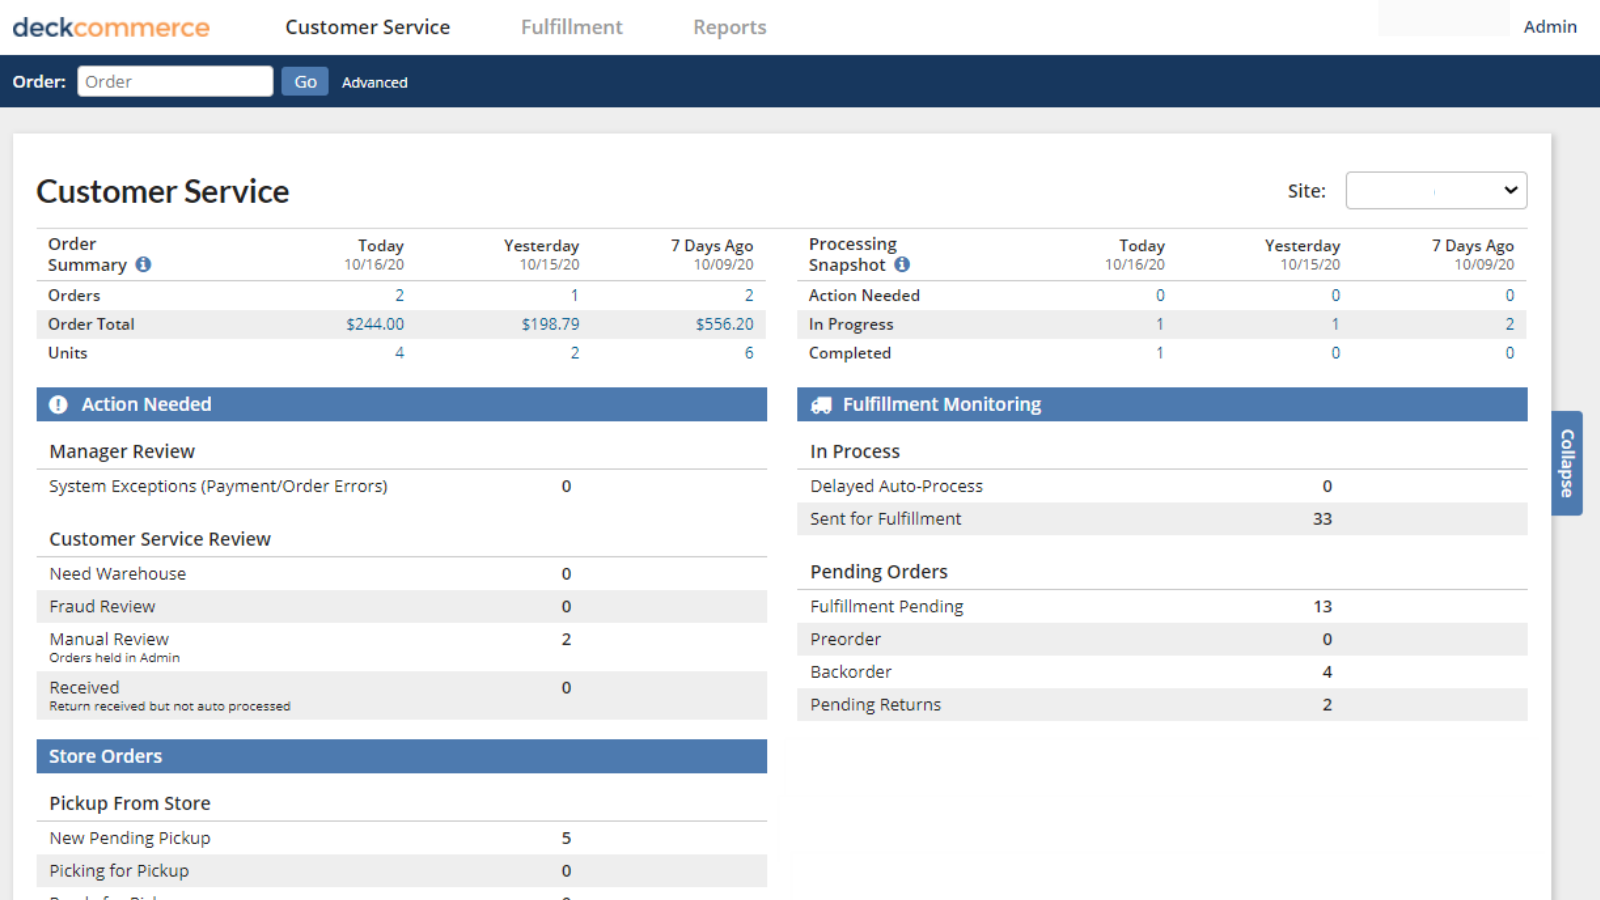 Stay organized with an overview of orders from all channels.